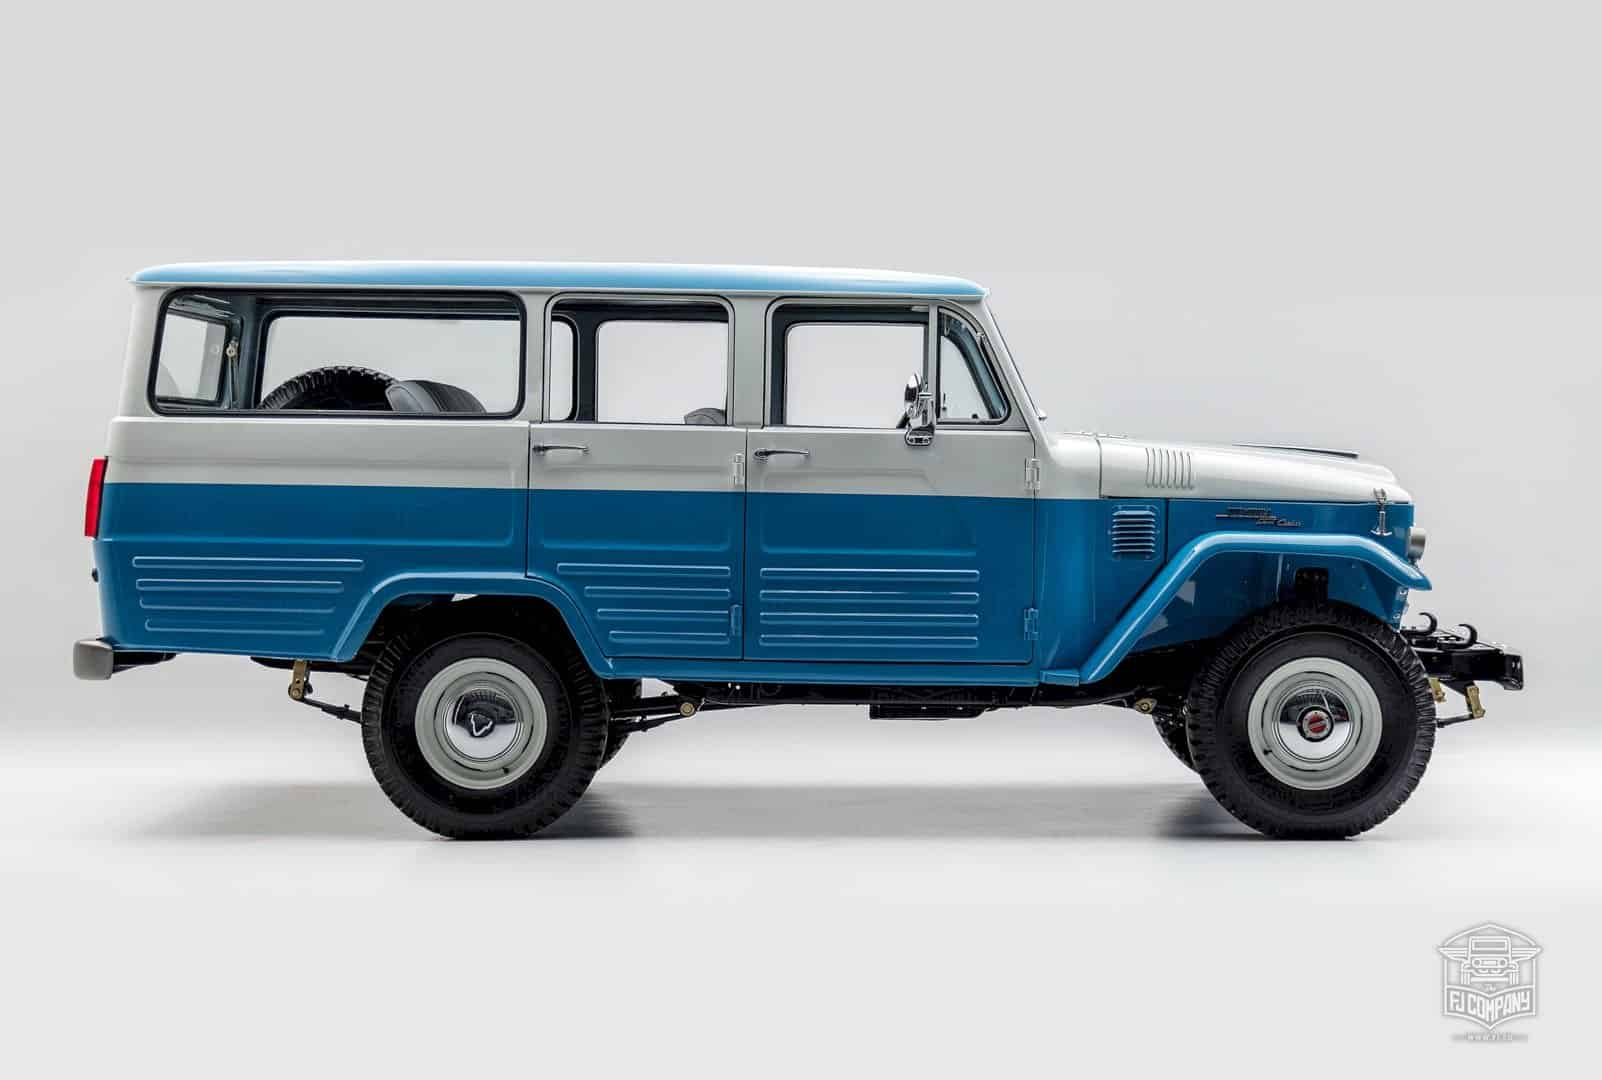 1967 Toyota Land Cruiser FJ45LV Capri Blue: The Dignity of a Legend